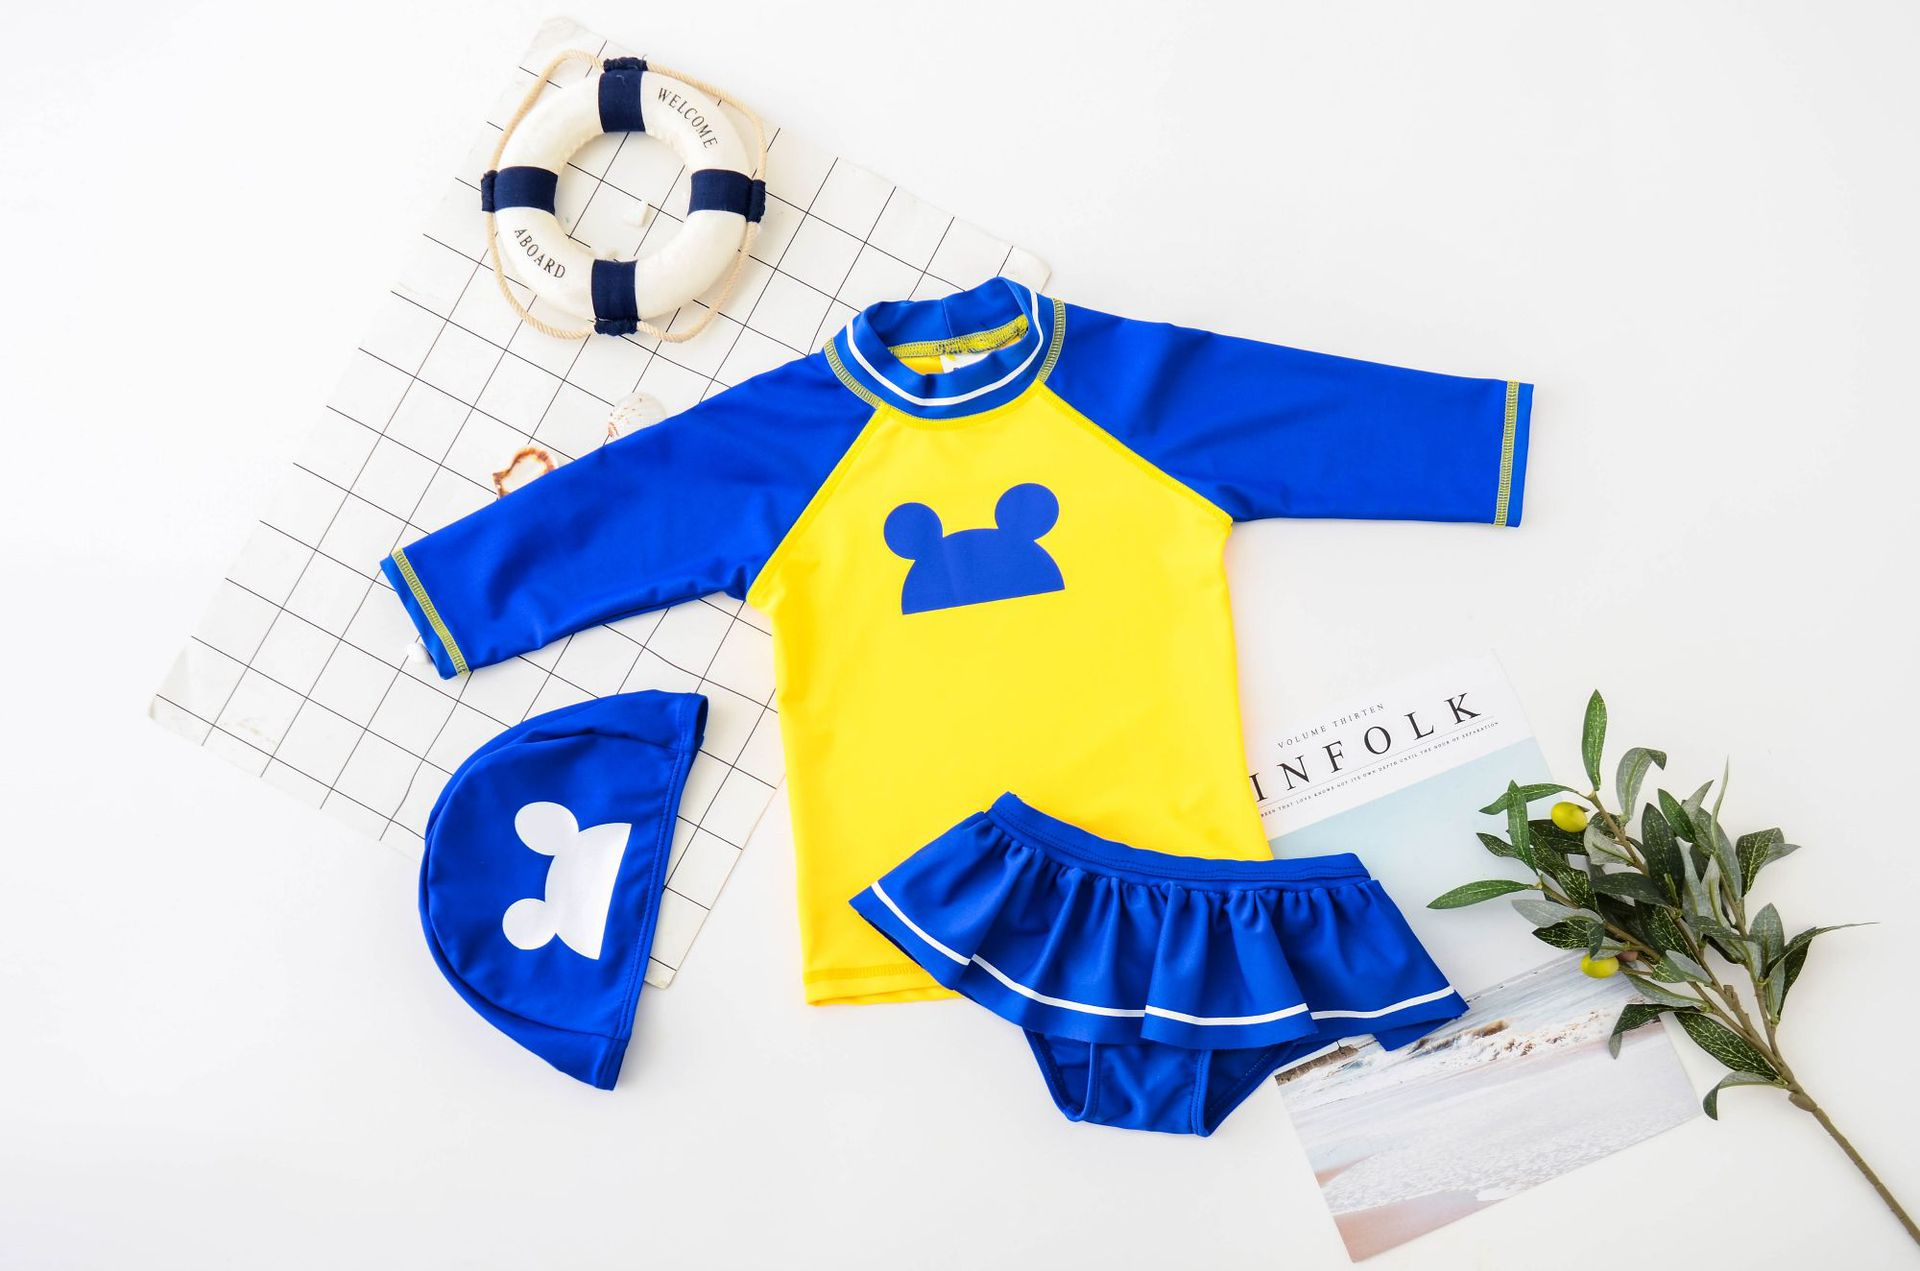 New Korean-style Split Type KID'S Swimwear Cartoon Skirt GIRL'S Swimsuit Sun-resistant Surf Wear CHILDREN'S Swimsuit